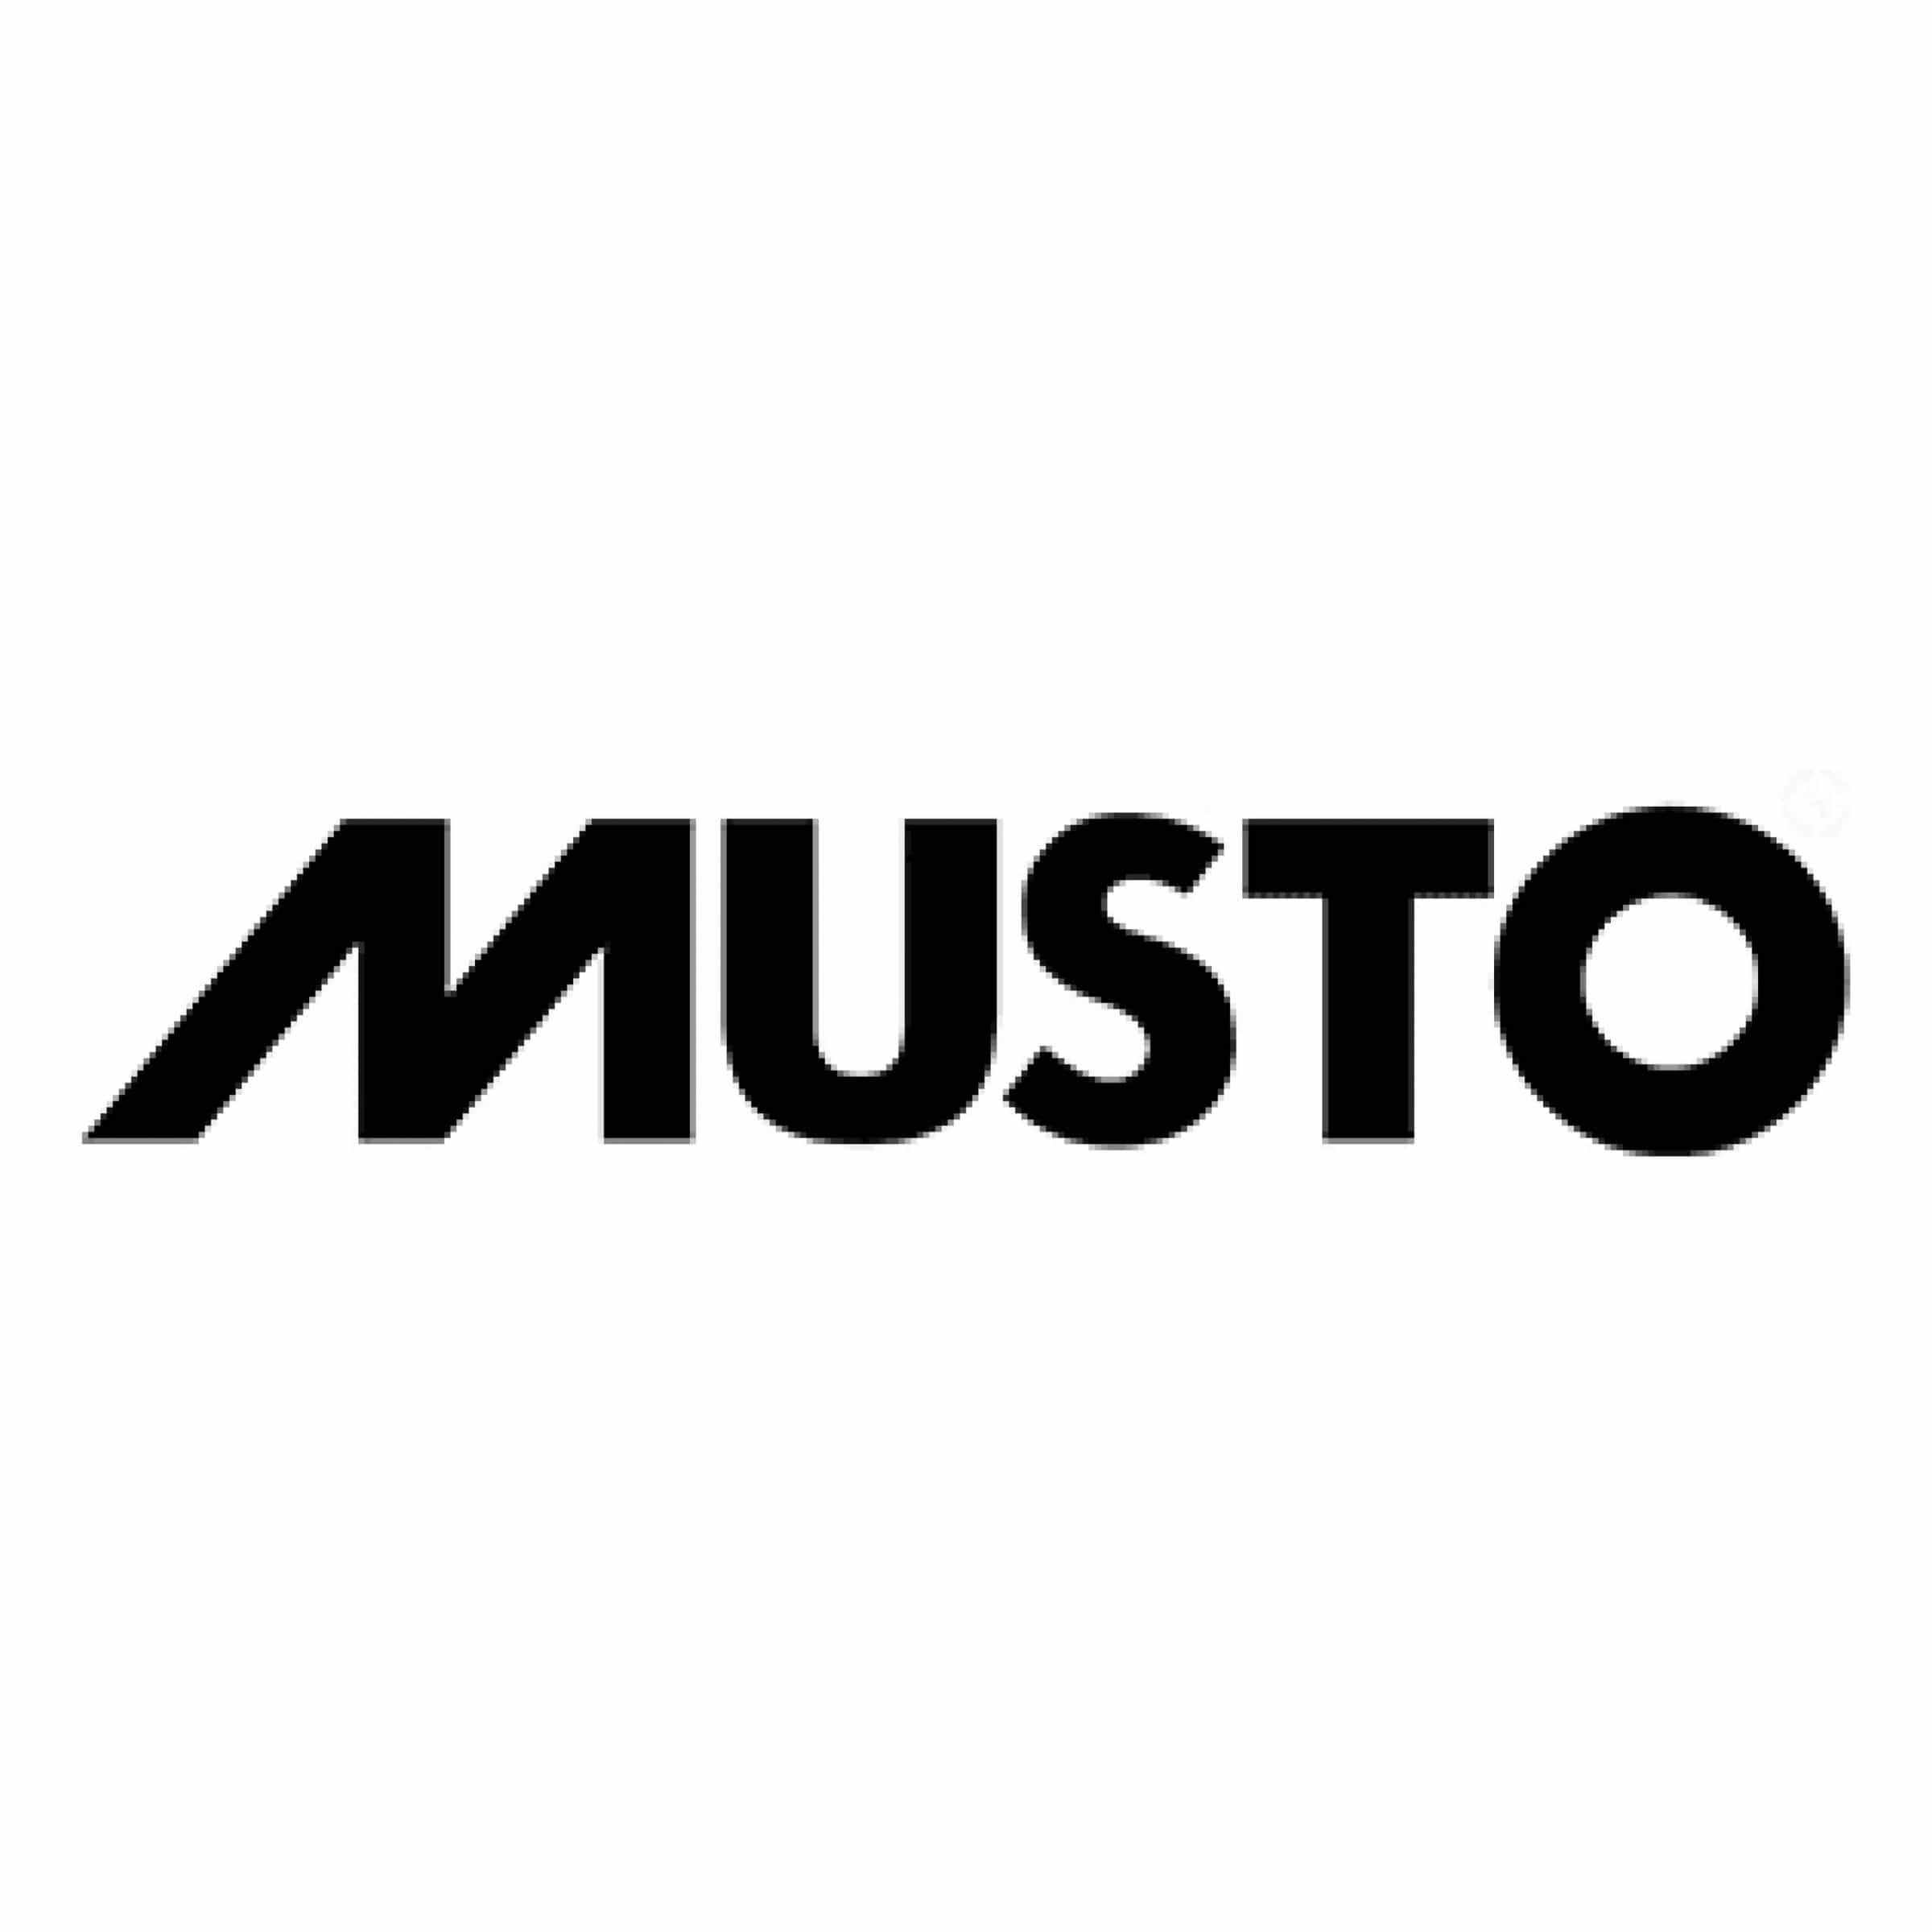 swan river sailing supporter musto logo